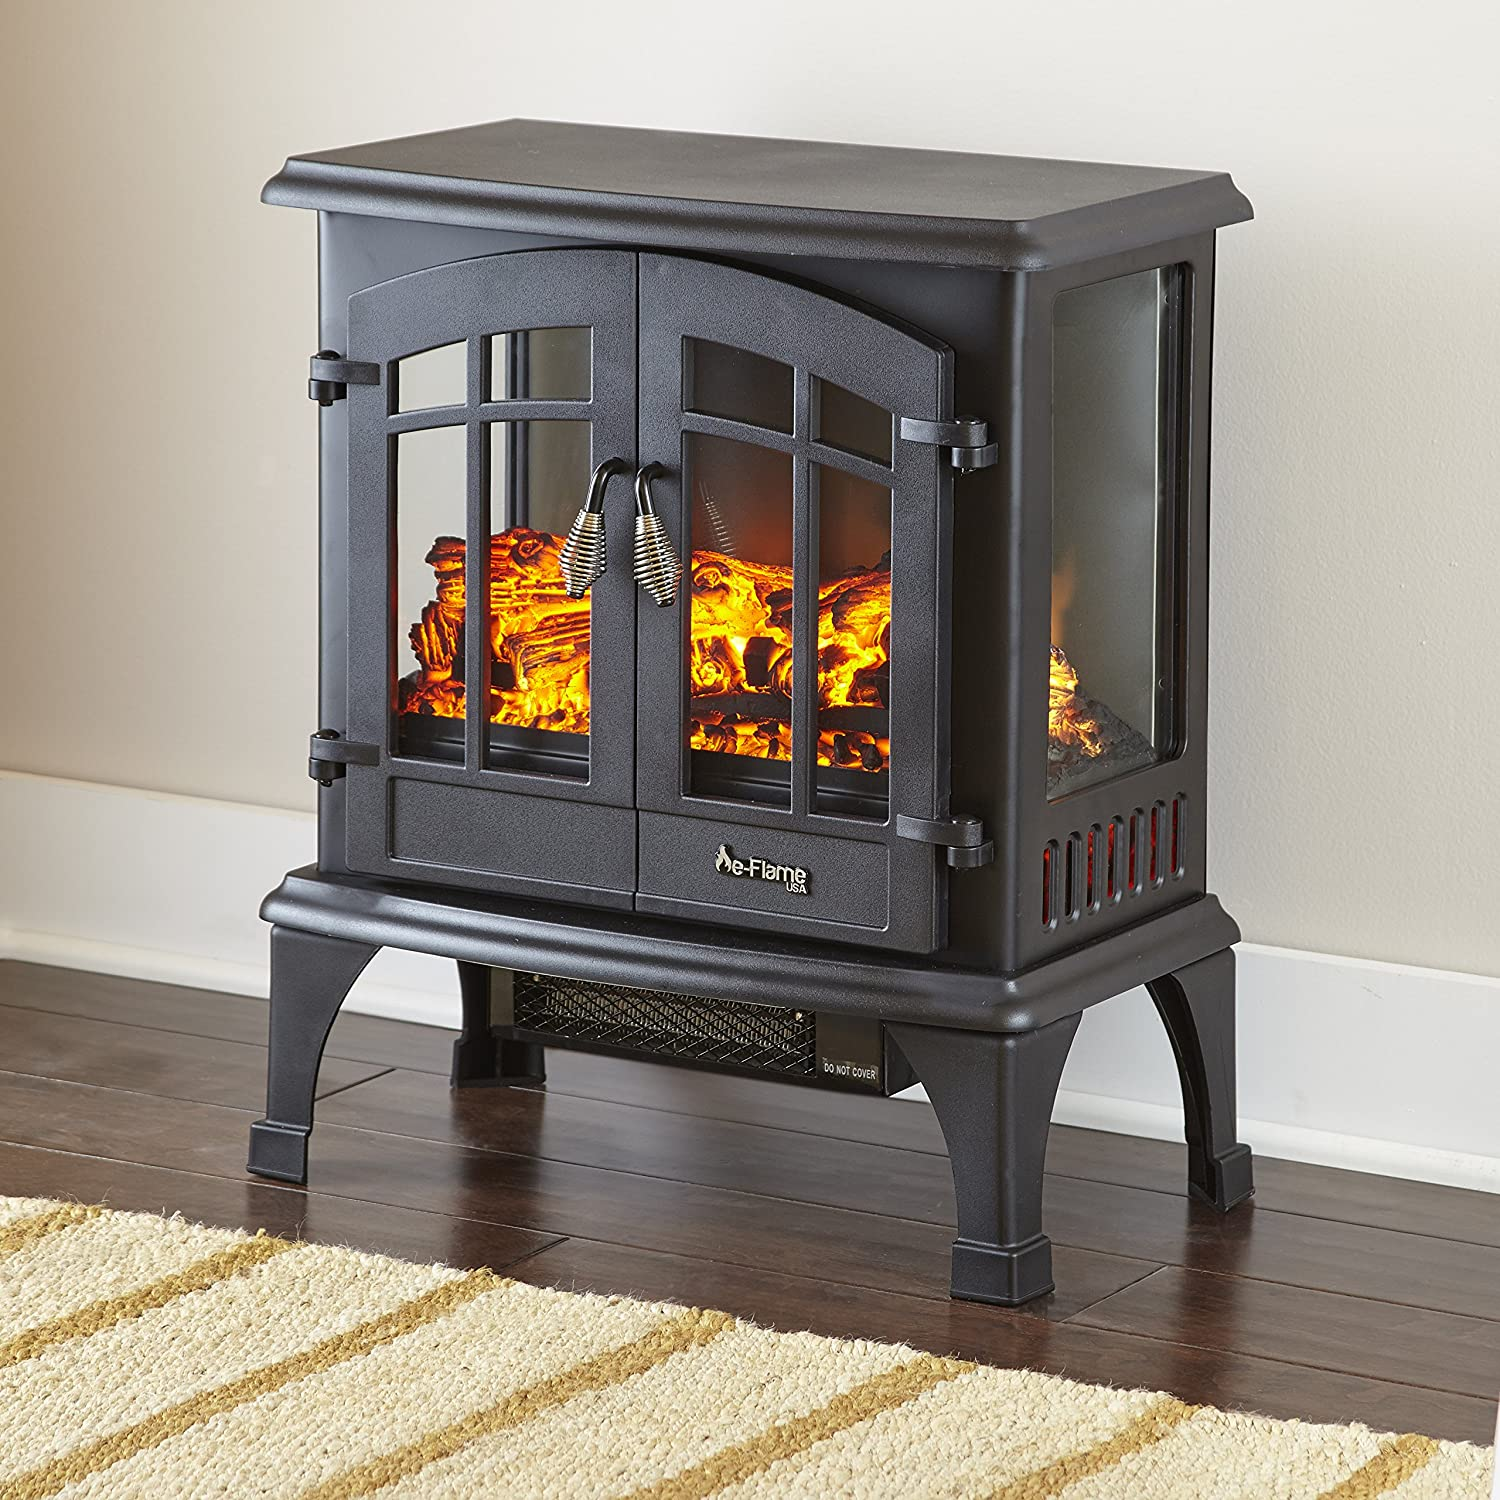 e-Flame USA Jasper Portable Electric Fireplace Stove Matte Black – This 23-inch Tall Freestanding Fireplace Features Heater and Fan Settings with Realistic and Brightly Burning Fire and Logs